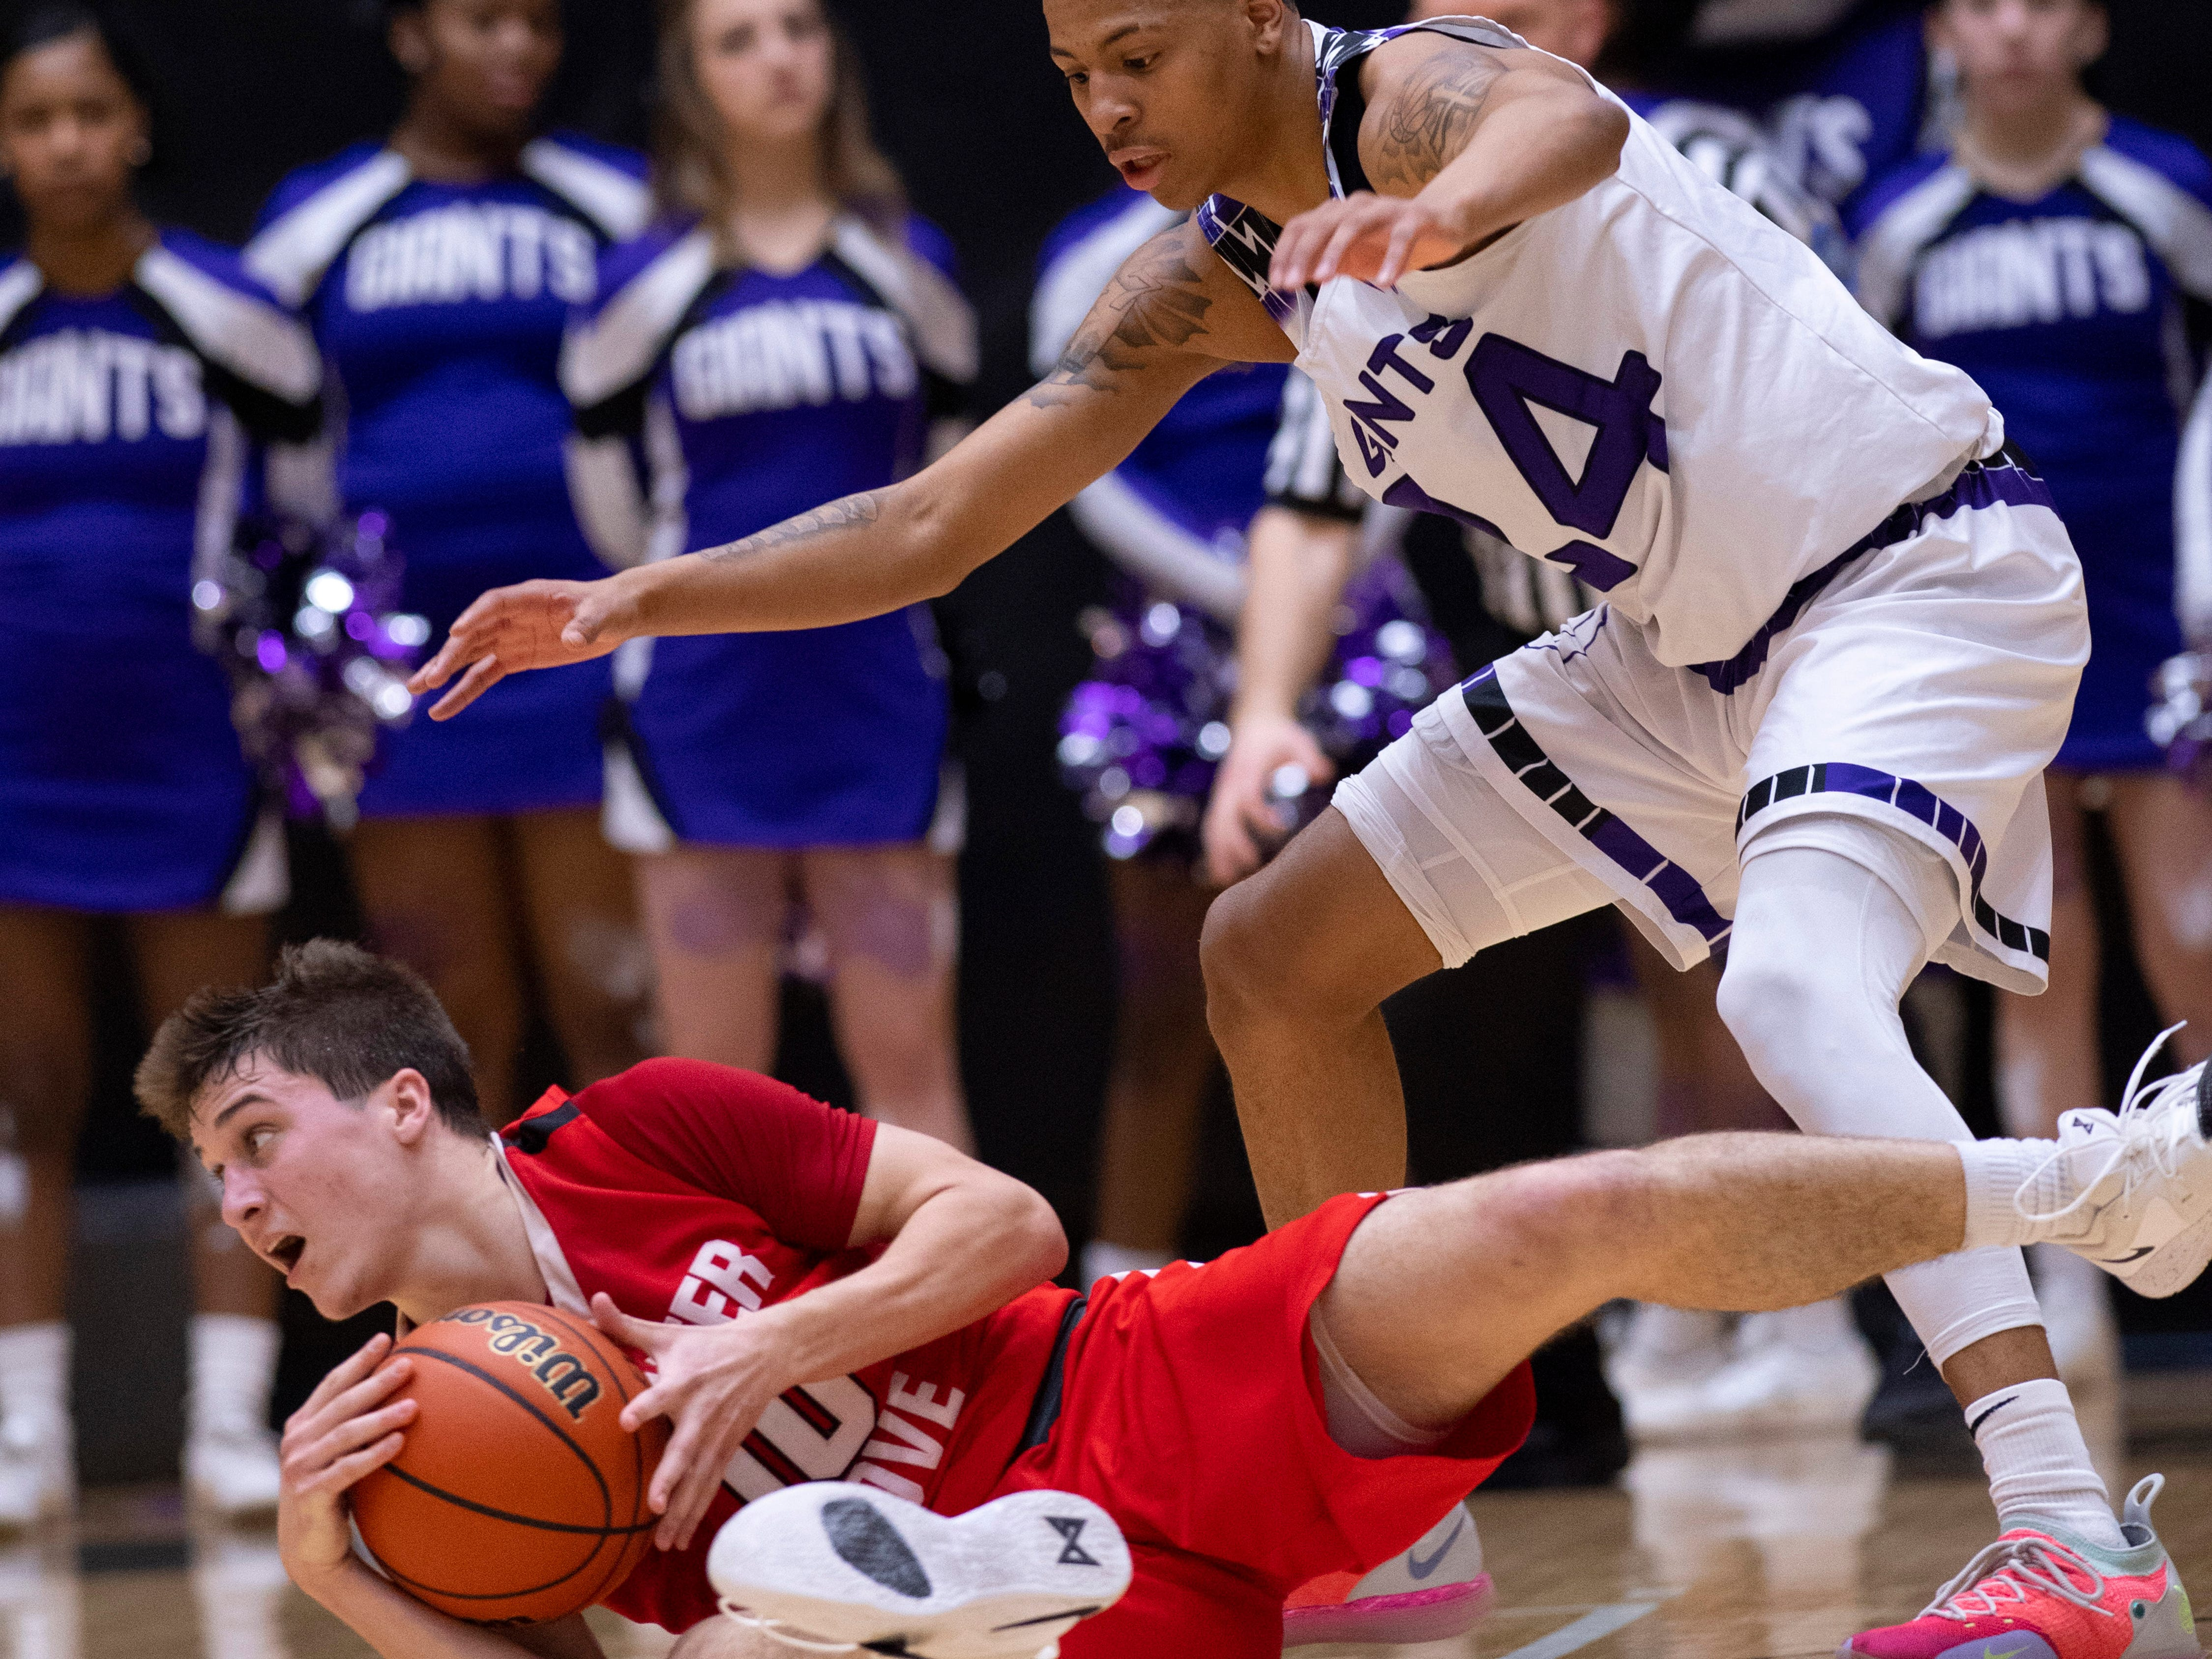 Center Grove's Spencer Piercefield (10) looks for a teammate to pass to while being defended by Ben Davis's Jalen Windham (24) during the 4A Boys Indiana Semi-State Basketball Tournament at the Hatchet House in Washington, Ind., Saturday afternoon.